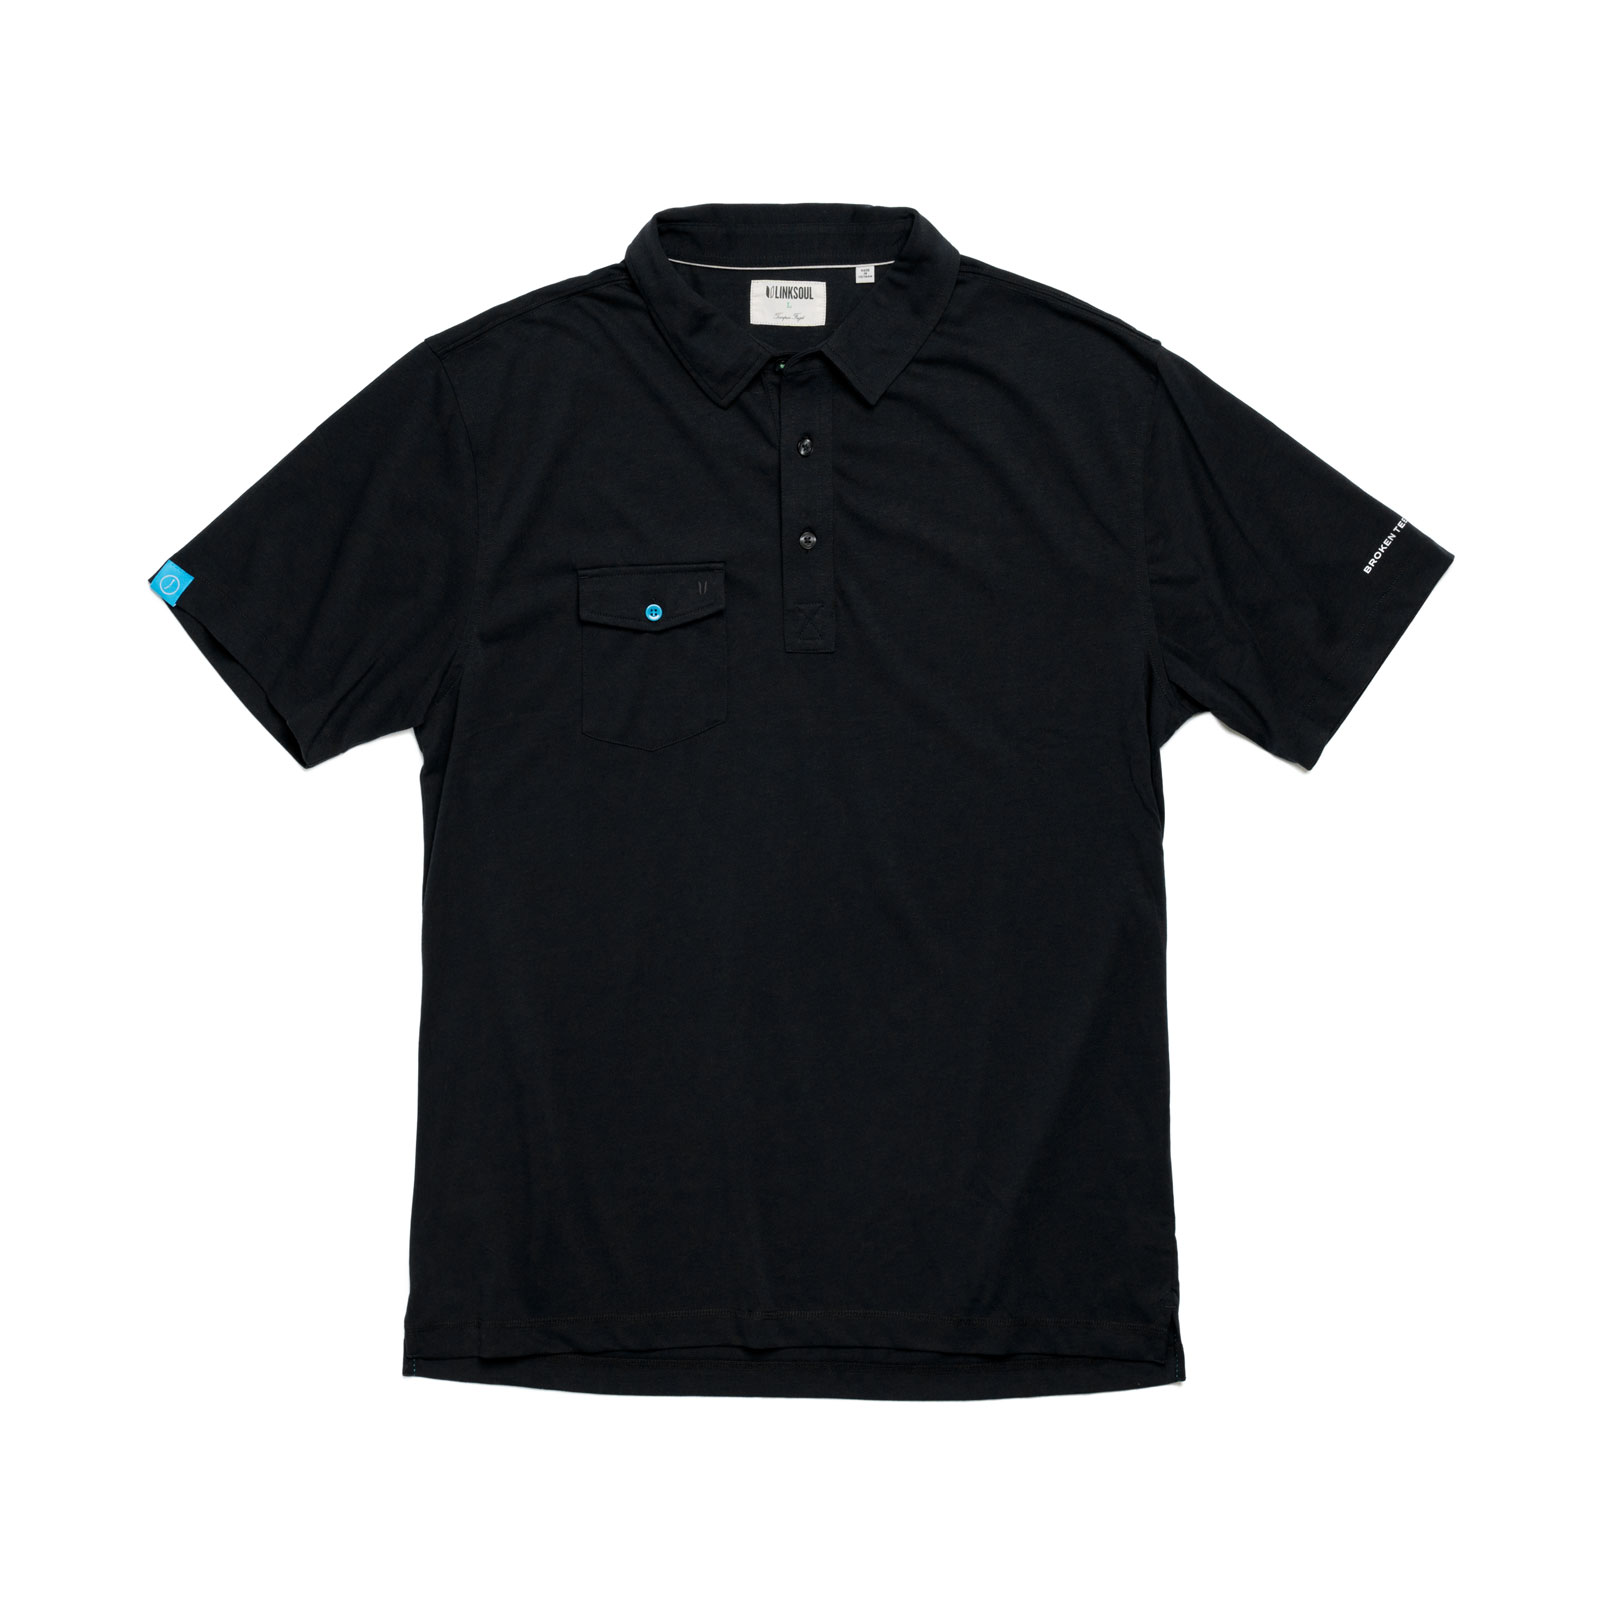 The Modern Classic Polo - Black